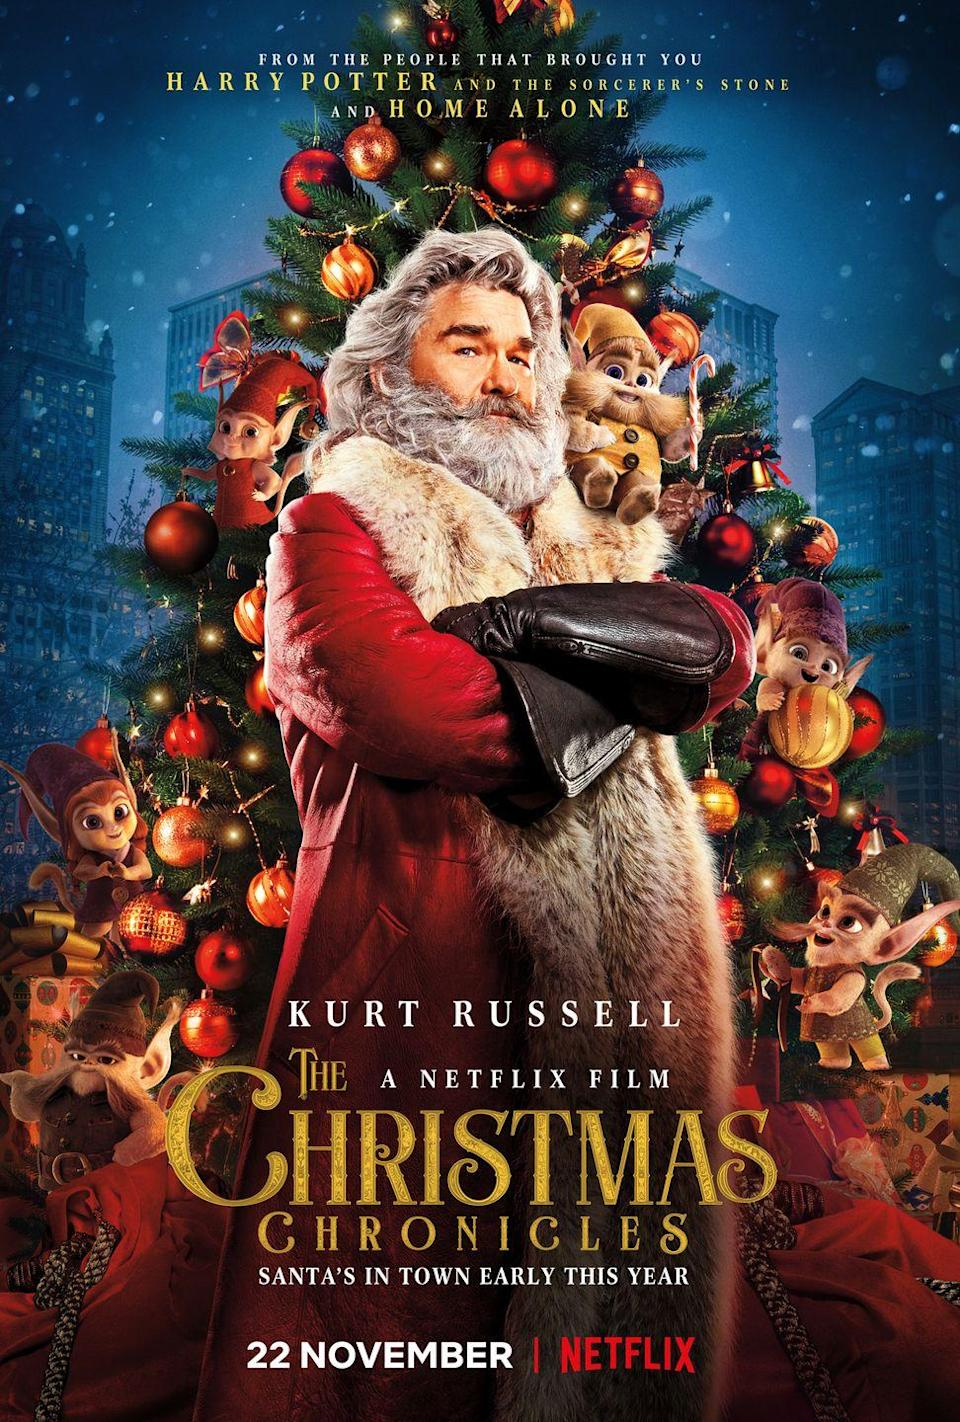 """<p>Starring Kurt Russell as Santa Claus, this jolly Netflix original film follows two children who encounter Santa in their own home — and find themselves on a magical adventure to help him save Christmas. If you're a fan, add Part II to your wishlist!</p><p><a class=""""link rapid-noclick-resp"""" href=""""https://www.netflix.com/title/80199682"""" rel=""""nofollow noopener"""" target=""""_blank"""" data-ylk=""""slk:WATCH NOW"""">WATCH NOW</a> <strong><br></strong></p><p><strong>RELATED:</strong> <a href=""""https://www.goodhousekeeping.com/holidays/christmas-ideas/g23706934/christmas-movies-kids-netflix/"""" rel=""""nofollow noopener"""" target=""""_blank"""" data-ylk=""""slk:Best Kids' Christmas Movies on Netflix 2021"""" class=""""link rapid-noclick-resp"""">Best Kids' Christmas Movies on Netflix 2021</a></p>"""